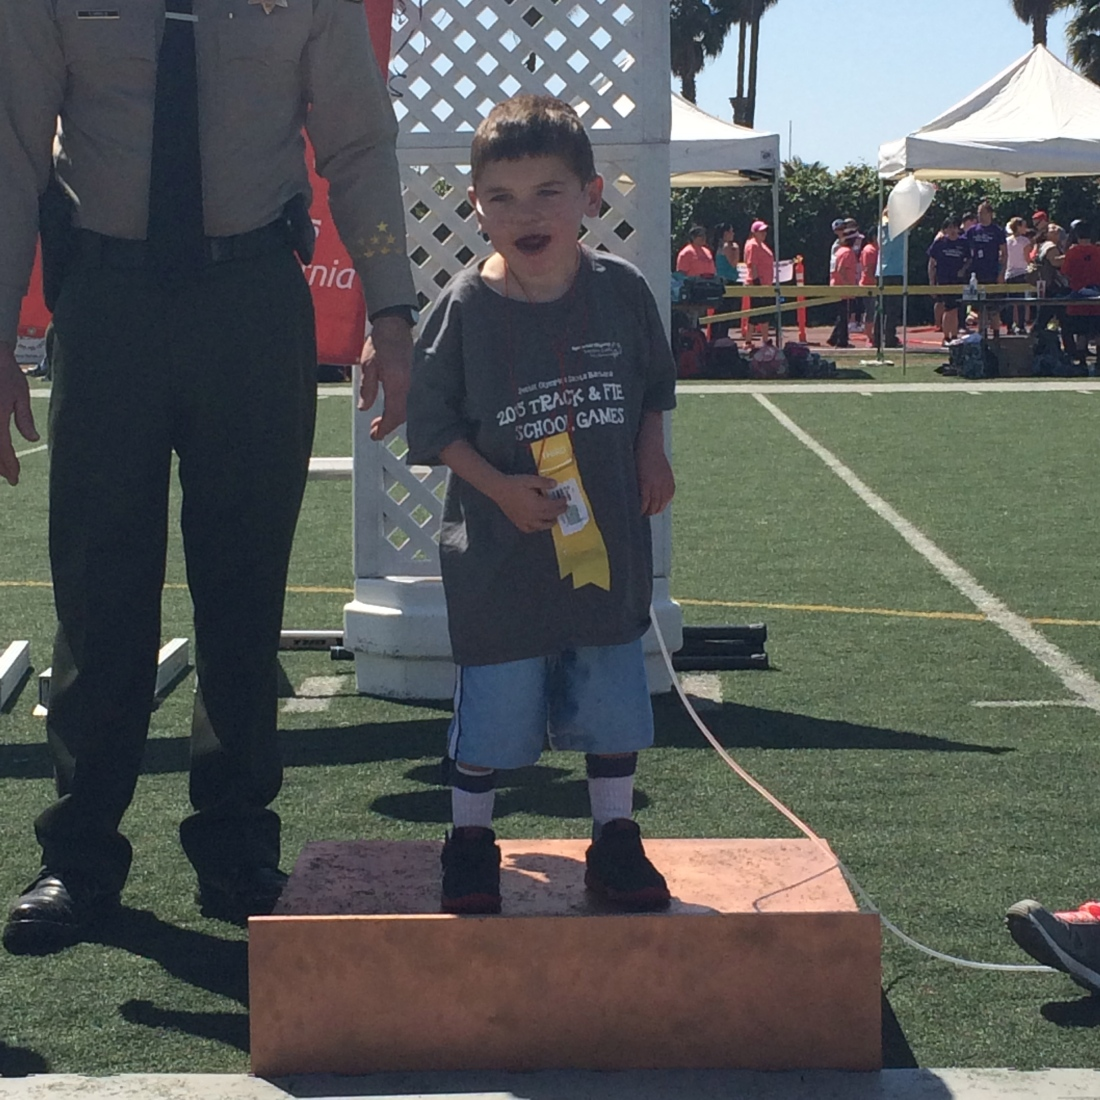 Rudy made it to the podium for a bronze ribbon.  :)